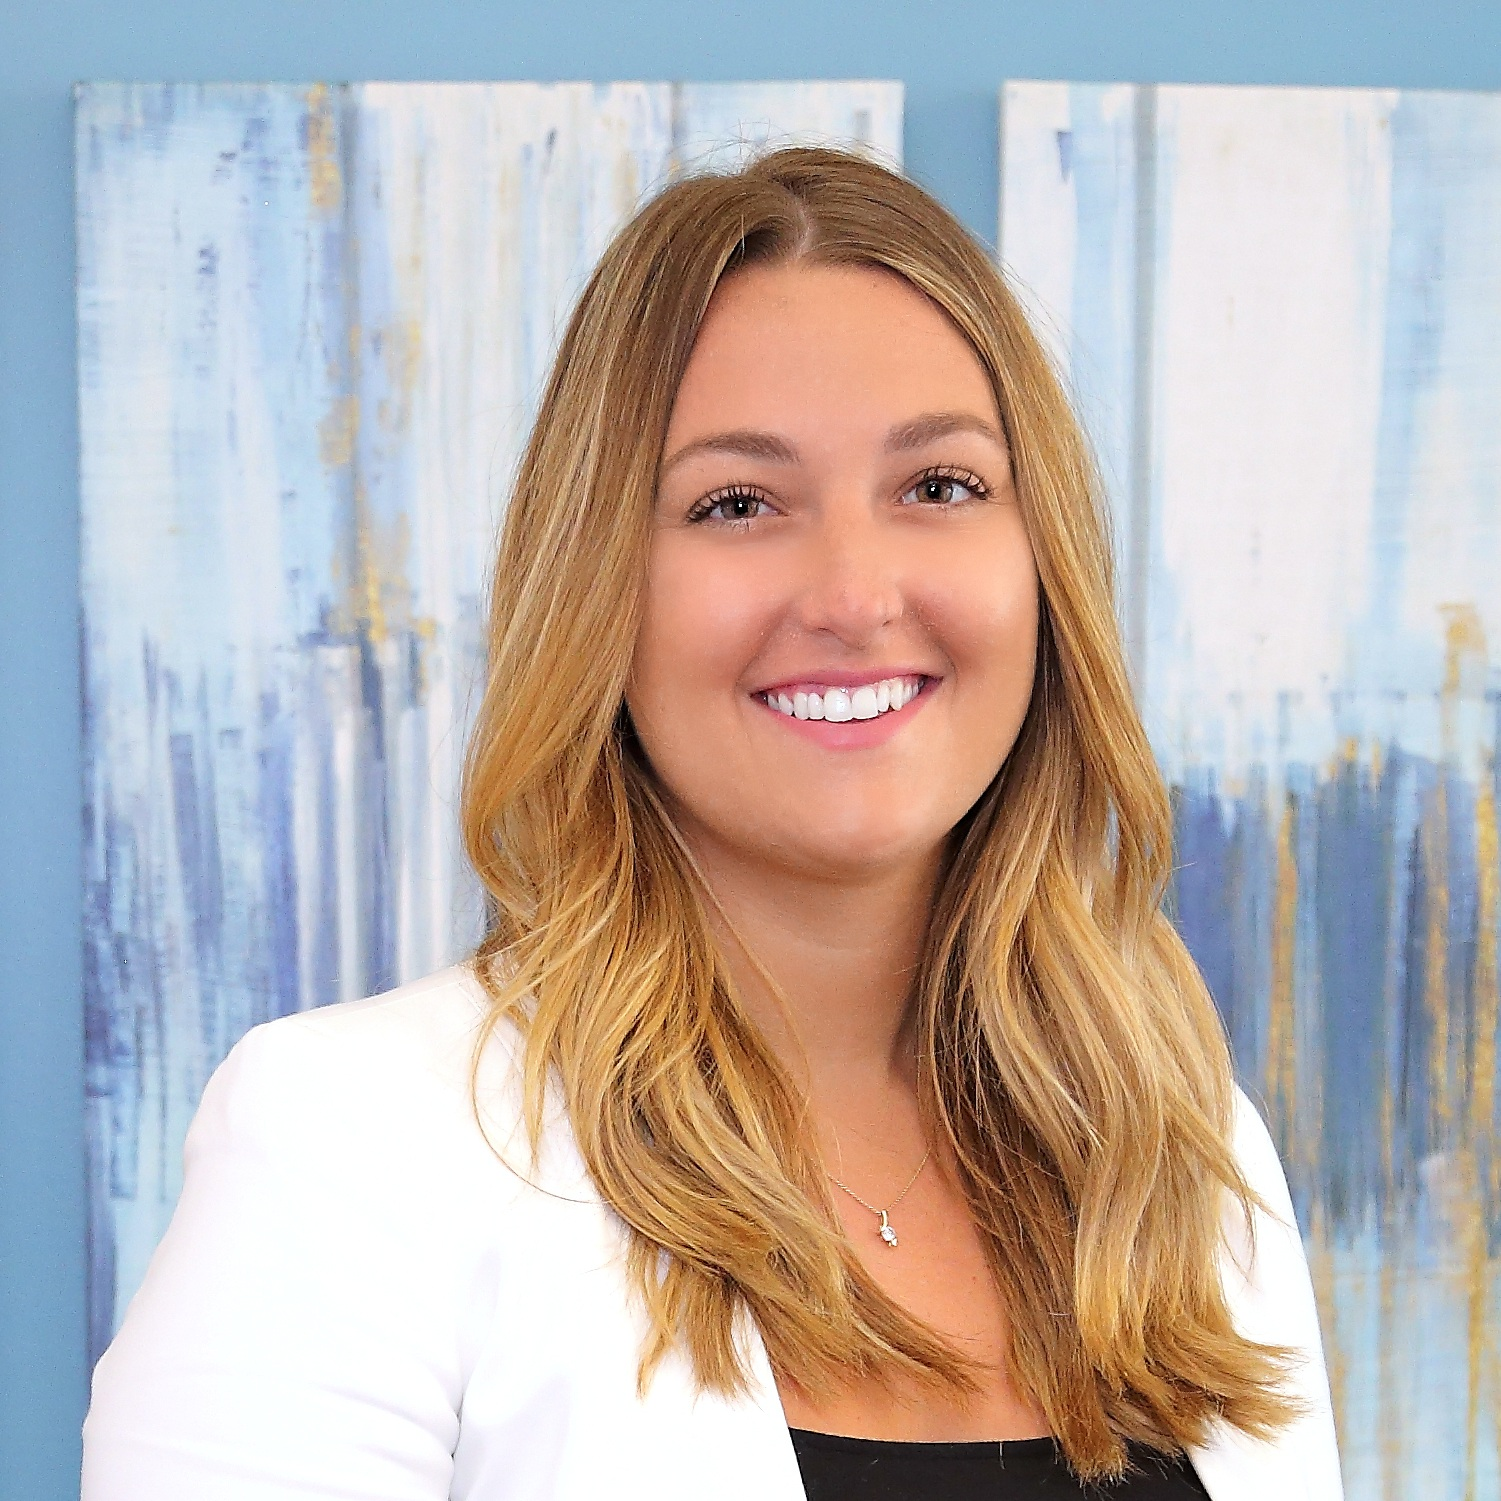 Alison Cecconi    Sales Representative - Ohio   Ali started on March 13, 2018 as our exclusive Sales Representative for the Ohio marketplace. We are so excited to have Ali on our team. She will be domiciled out of Columbus, OH.